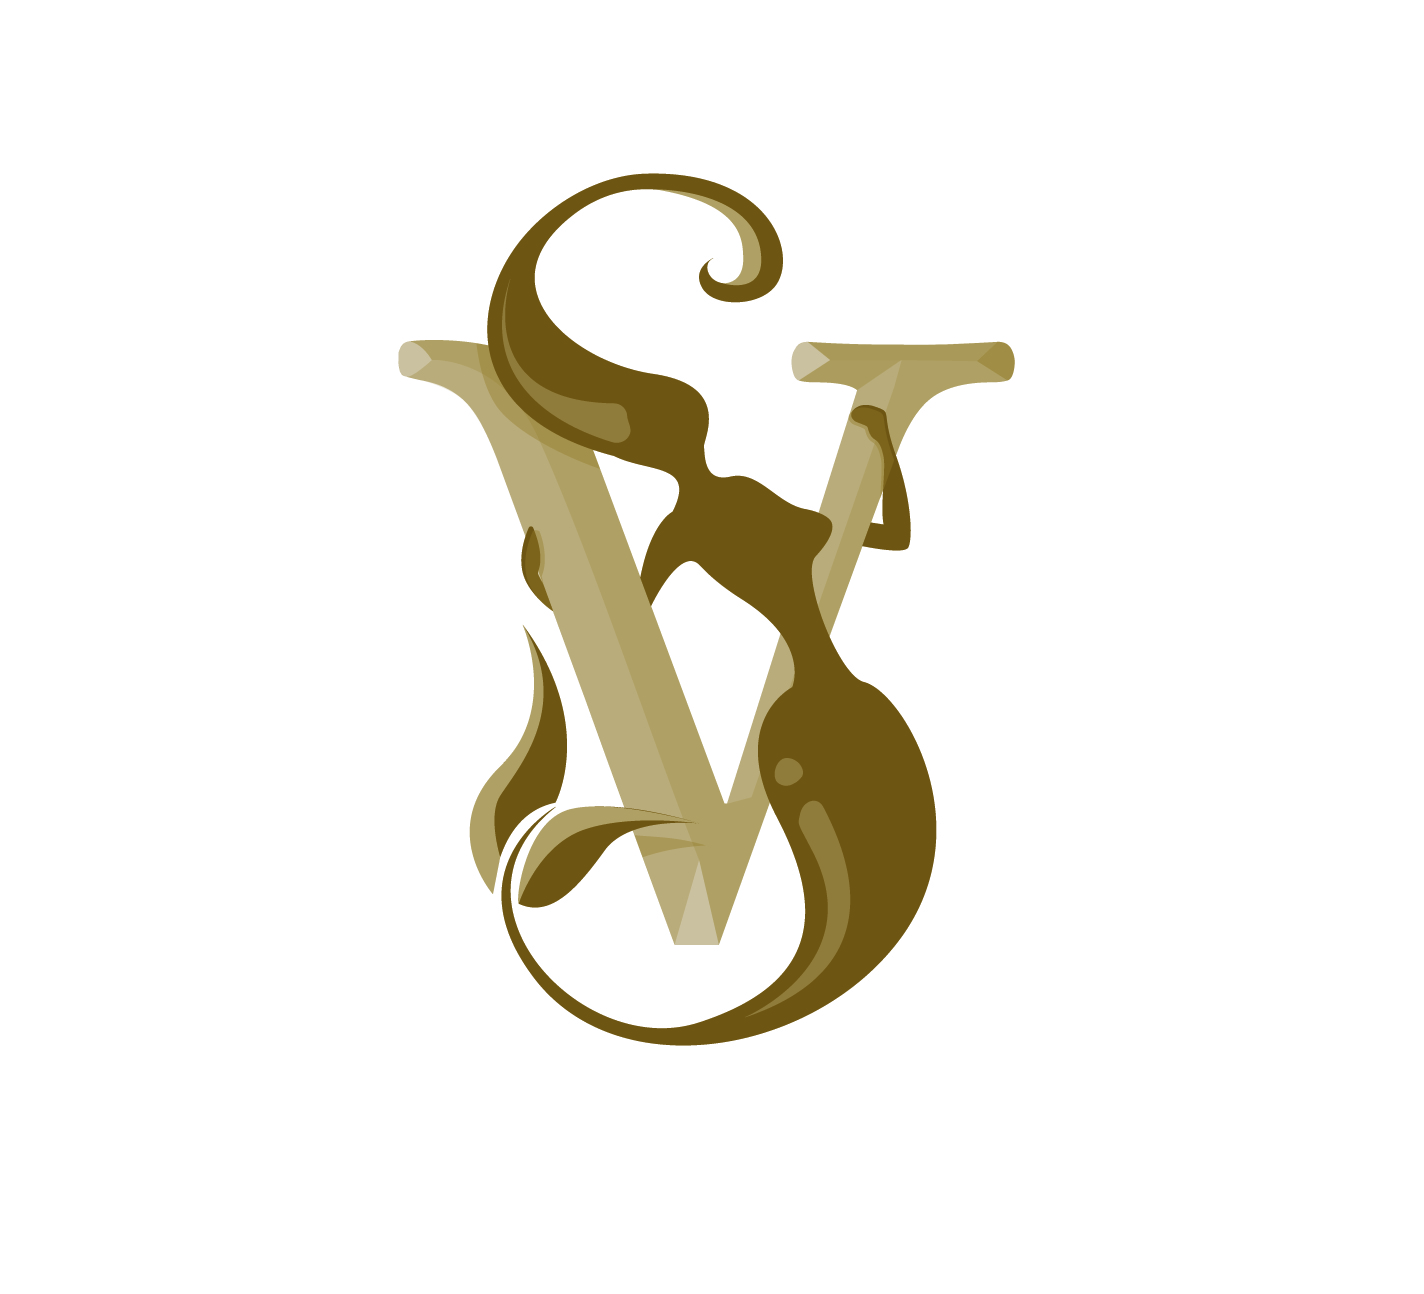 SIREN VINTAGE LOGO (no text)-14